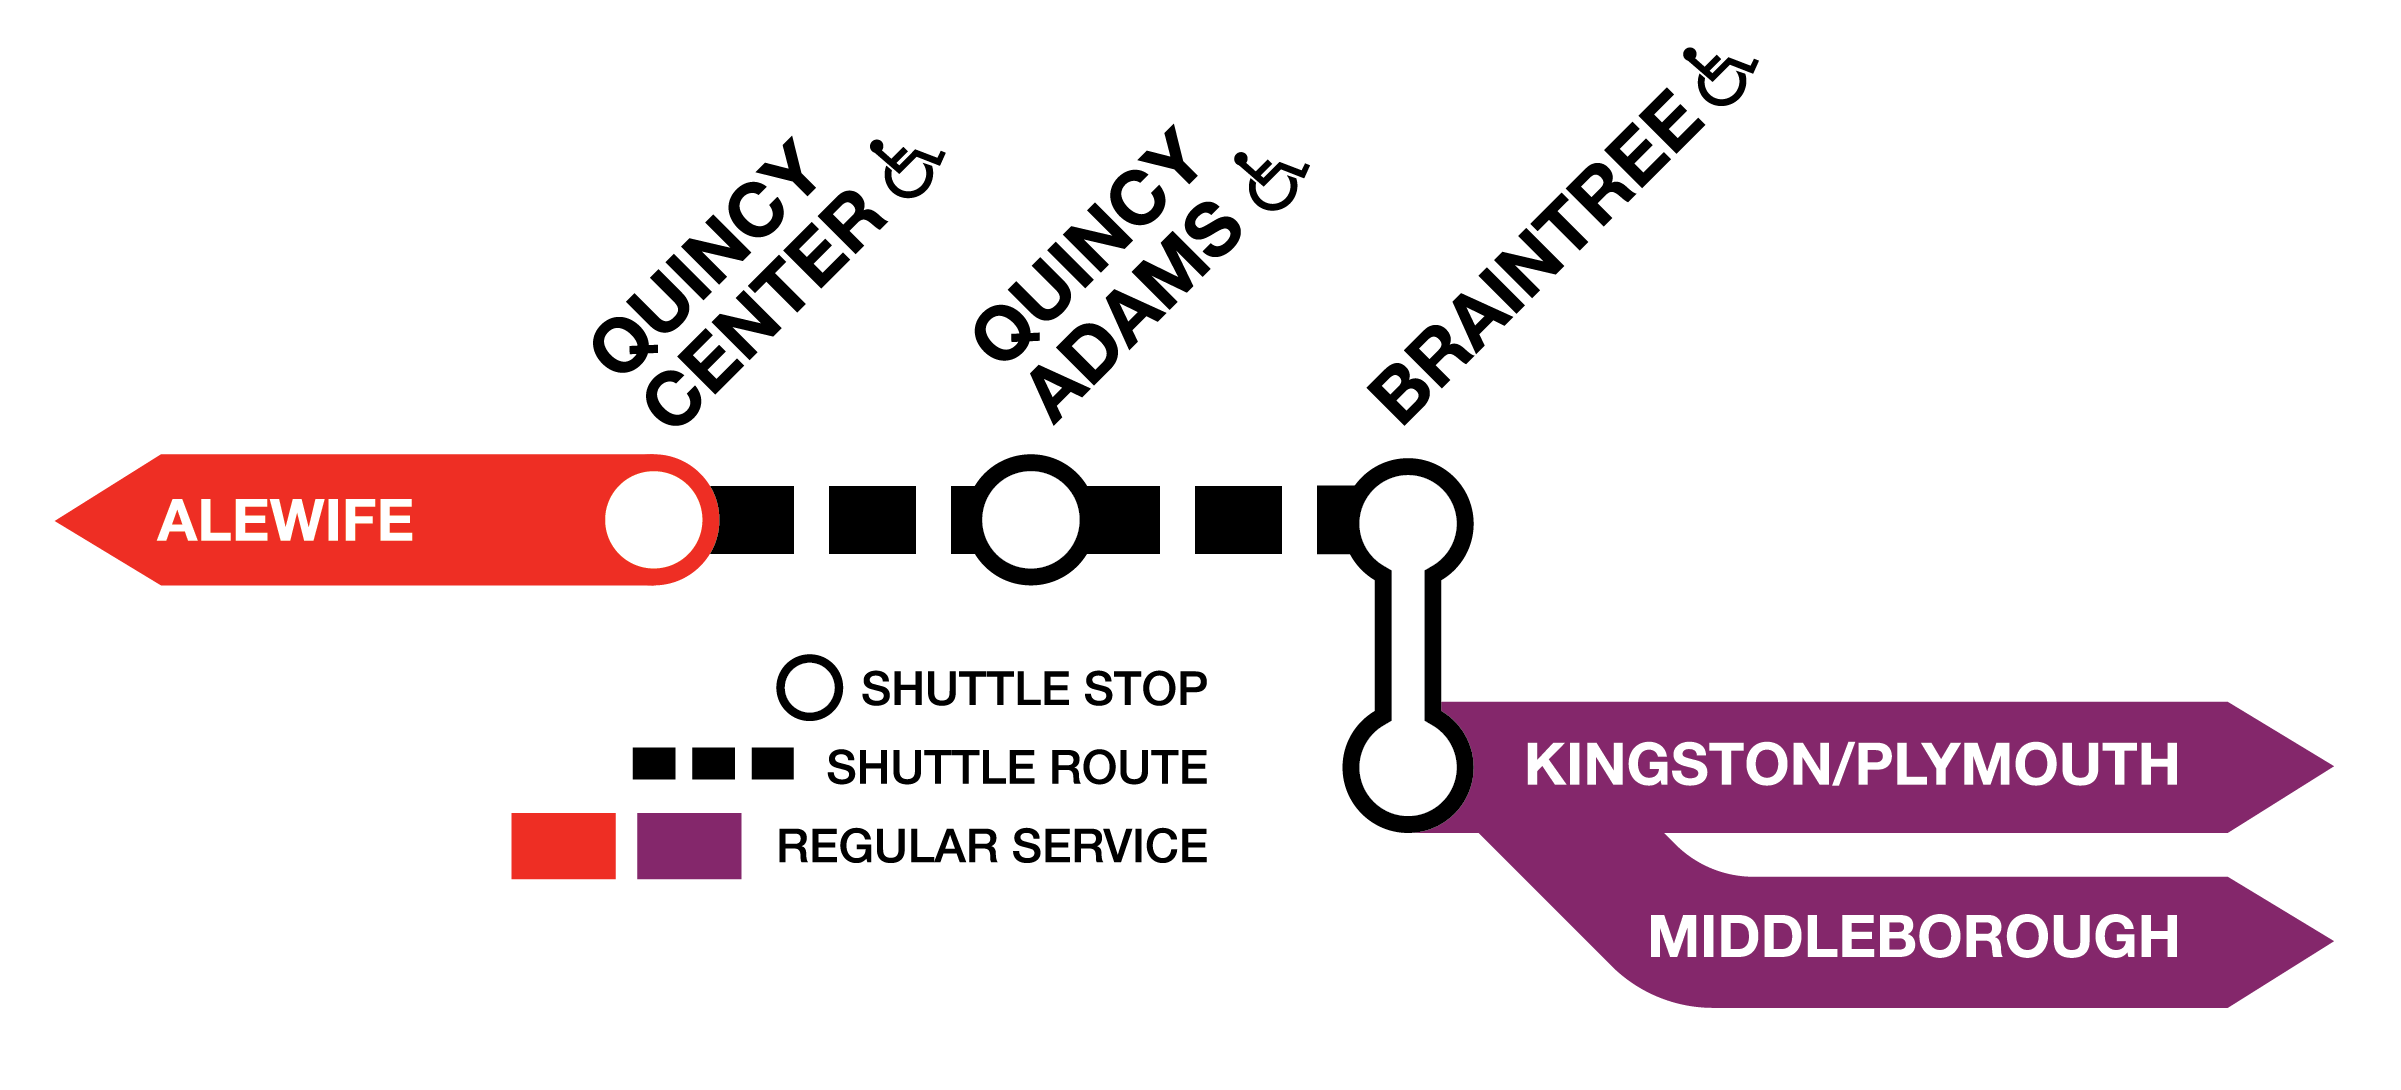 Diagram of the Red Line in the South Shore, showing the connecting Commuter Rail Lines at Braintree. Shuttles run between Quincy Center and Braintree, and the Middleborough and Kingston/Plymouth Lines terminate at Braintree, whre riders can transfer to the Red Line bus shuttle.